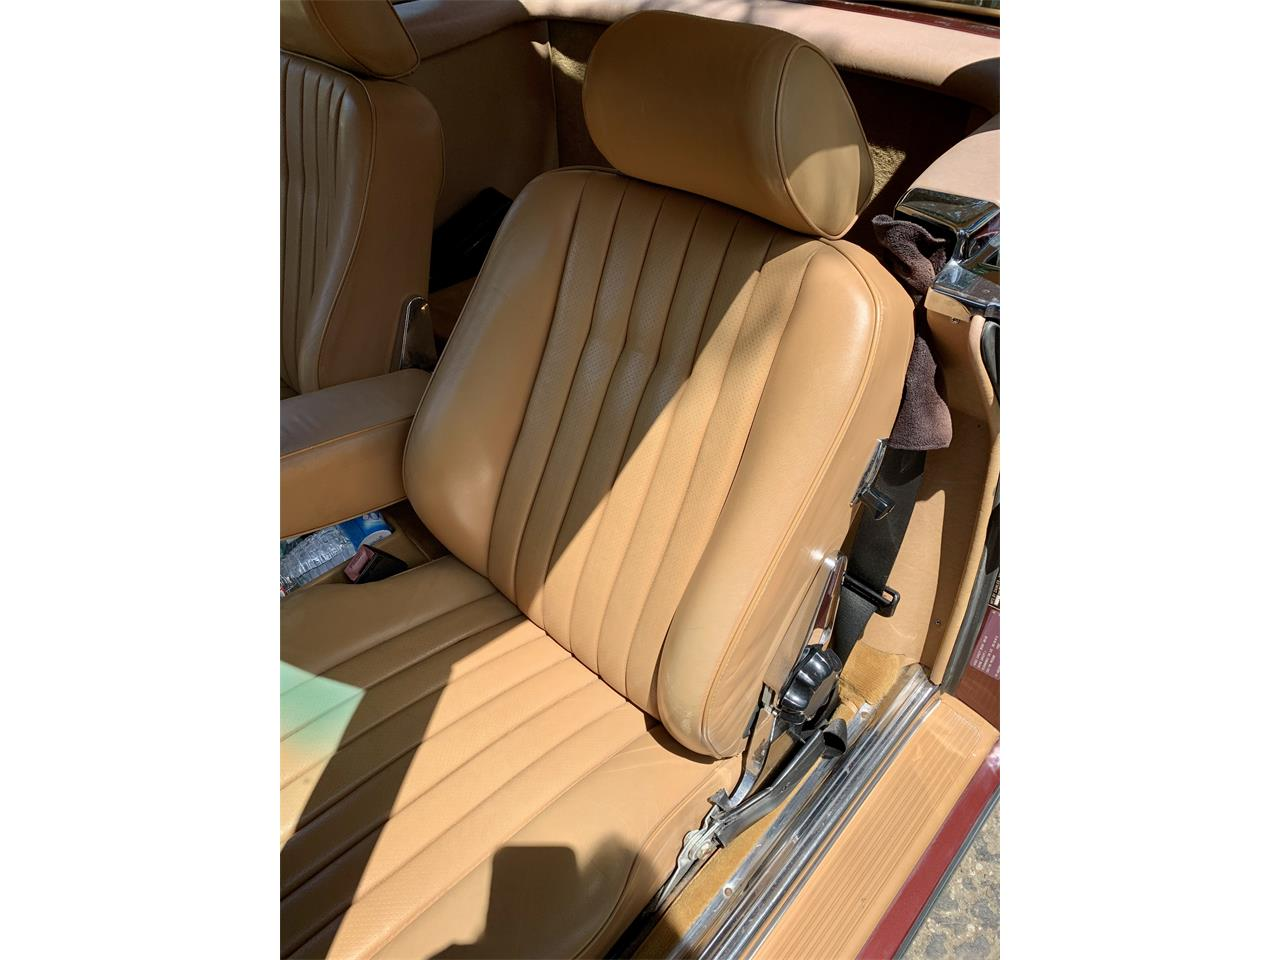 1988 Mercedes-Benz 560SL (CC-1378087) for sale in Sea Girt, New Jersey